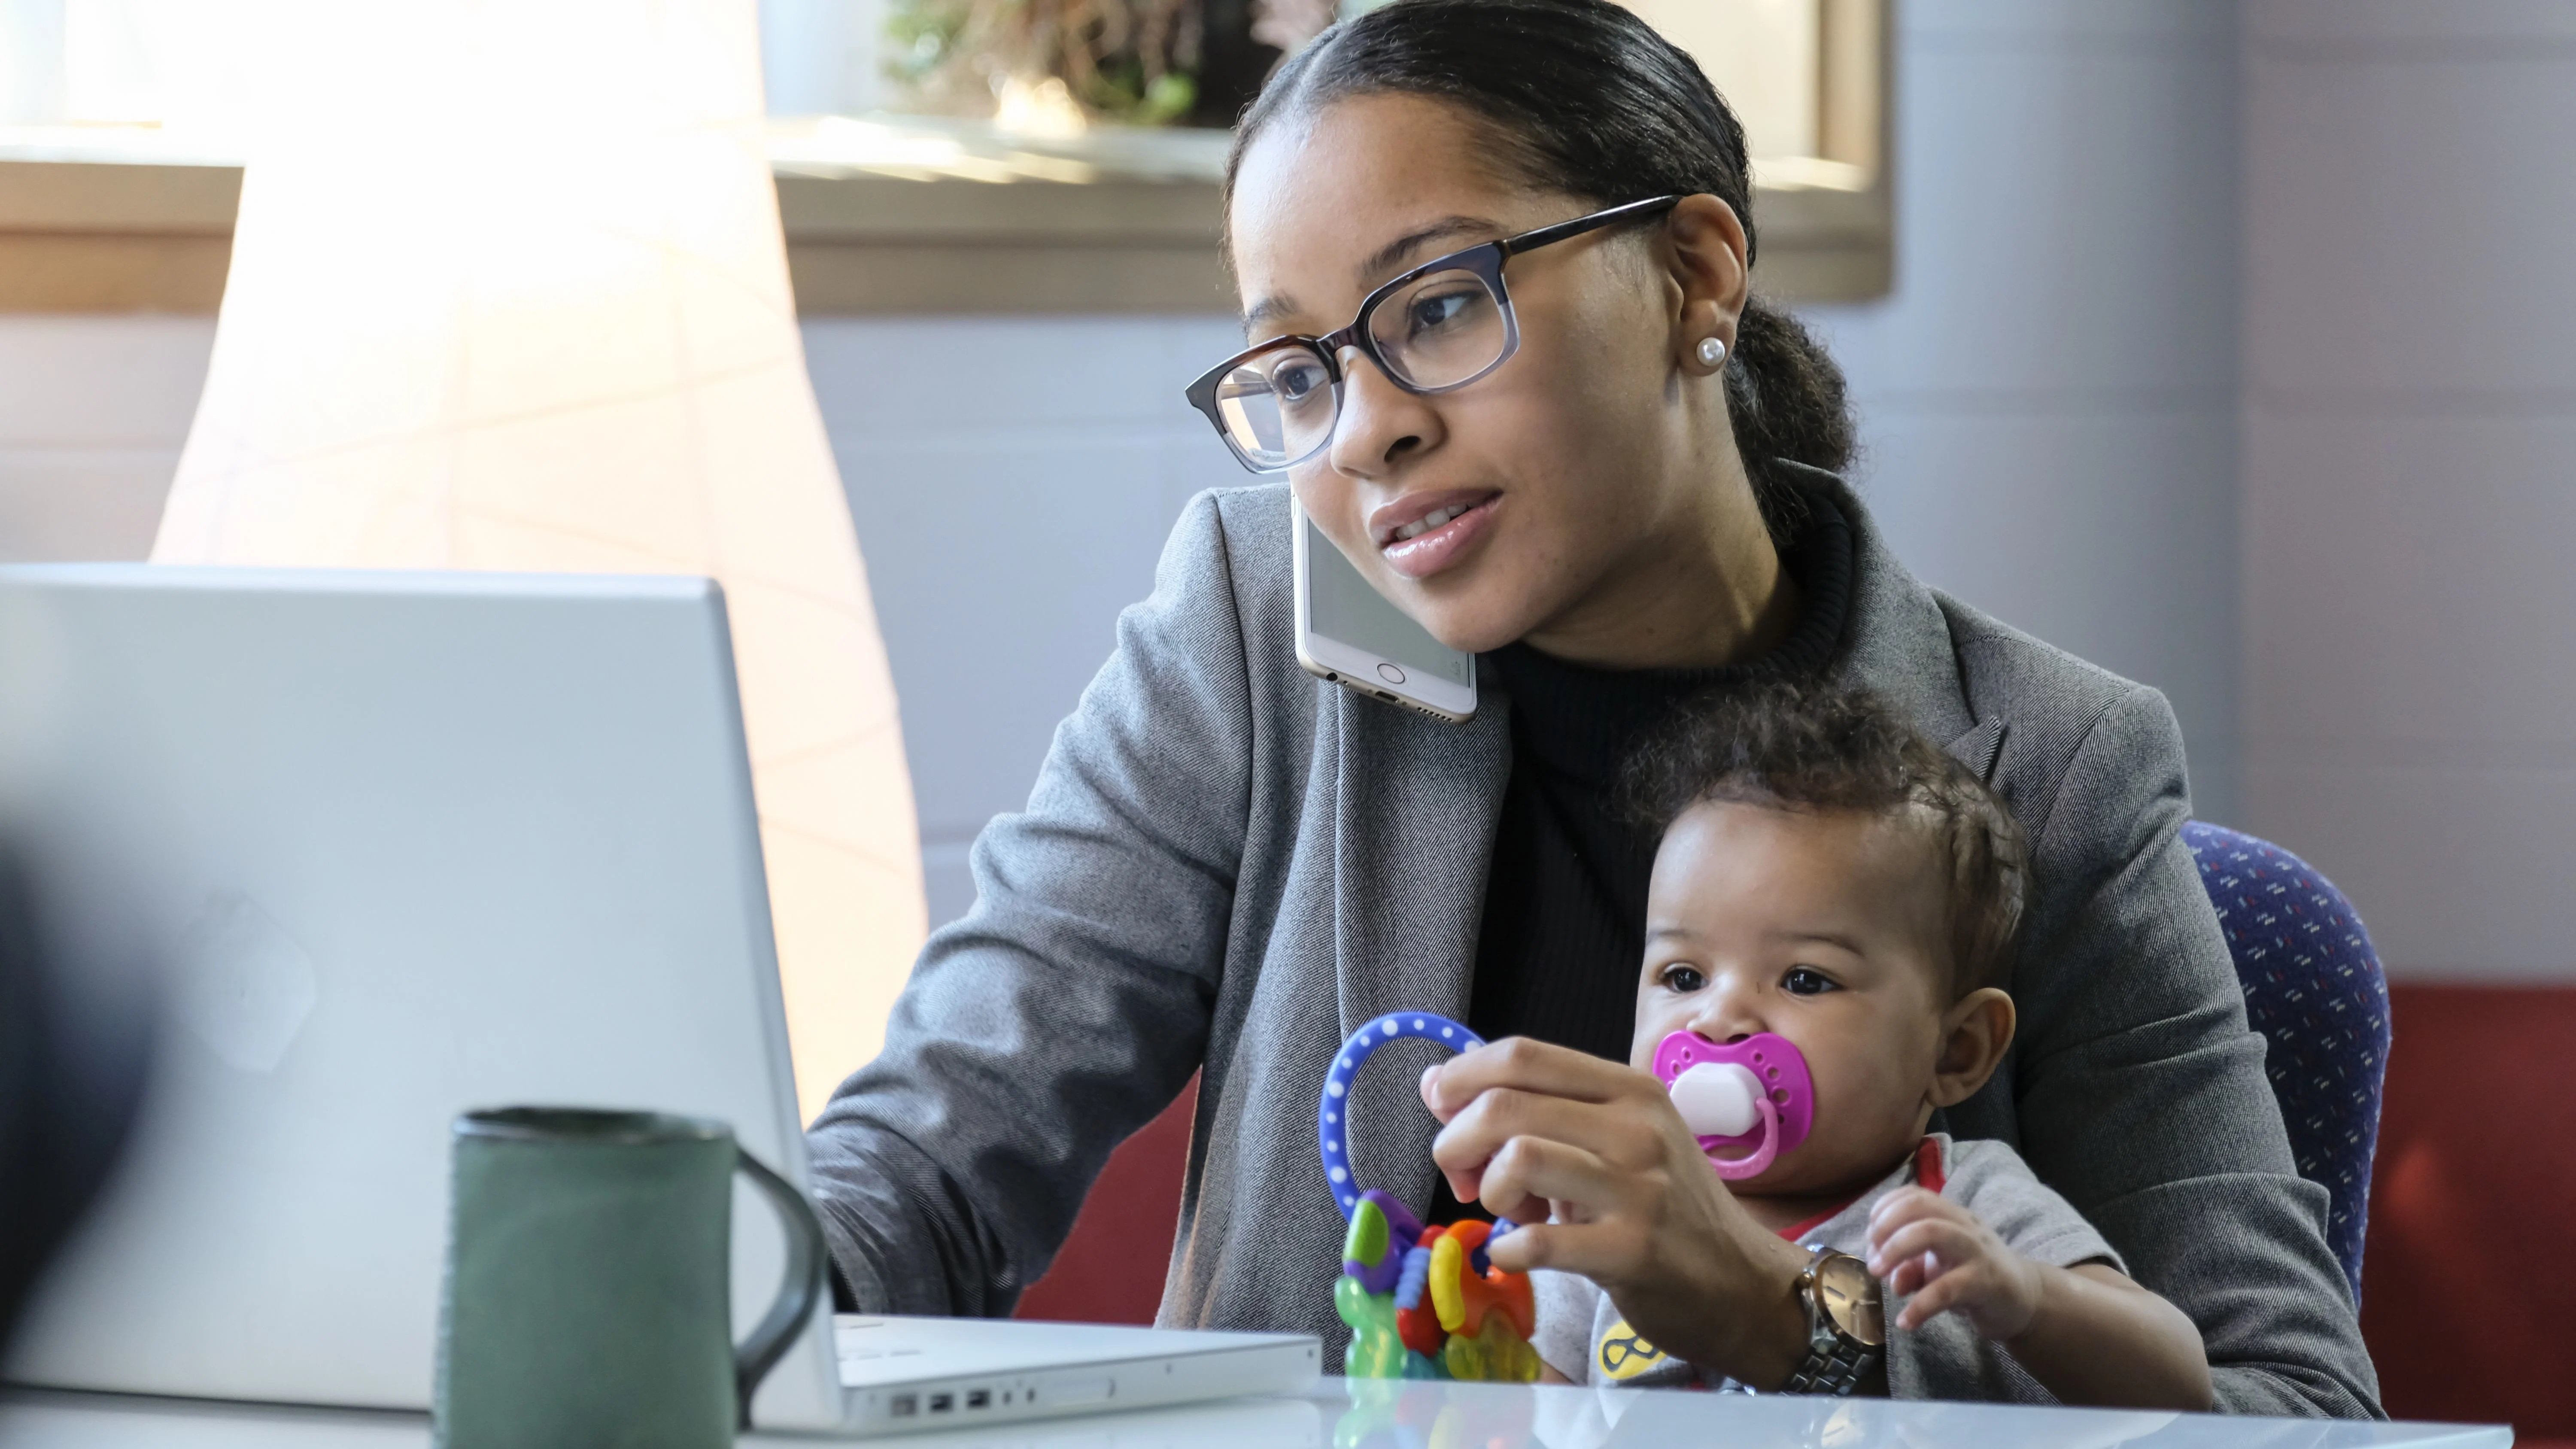 How To Be A Better Working Parent Than Your Own Parents